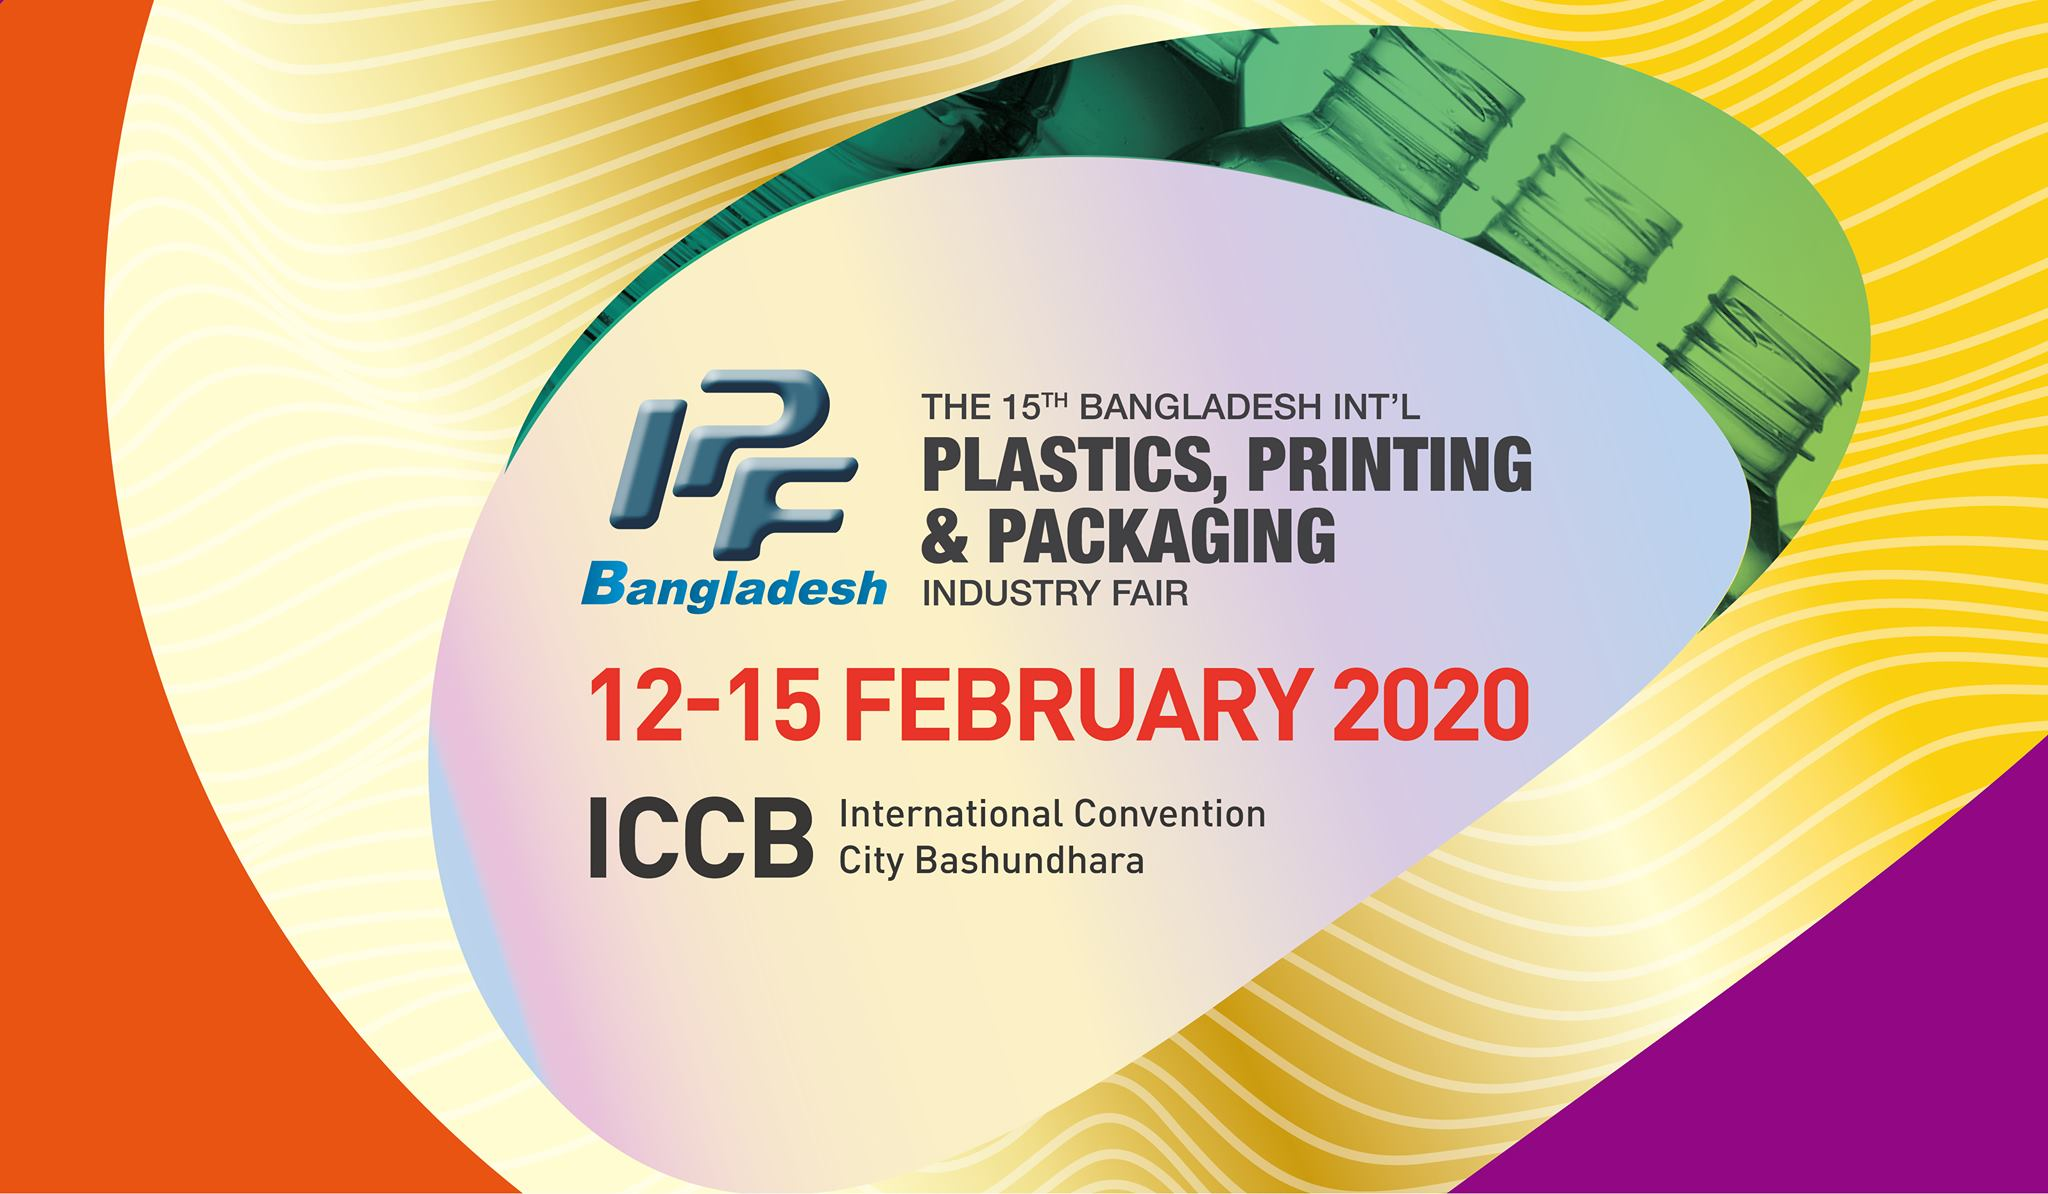 15th Bangladesh International Plastics, Printing and Packaging Industrial Fair